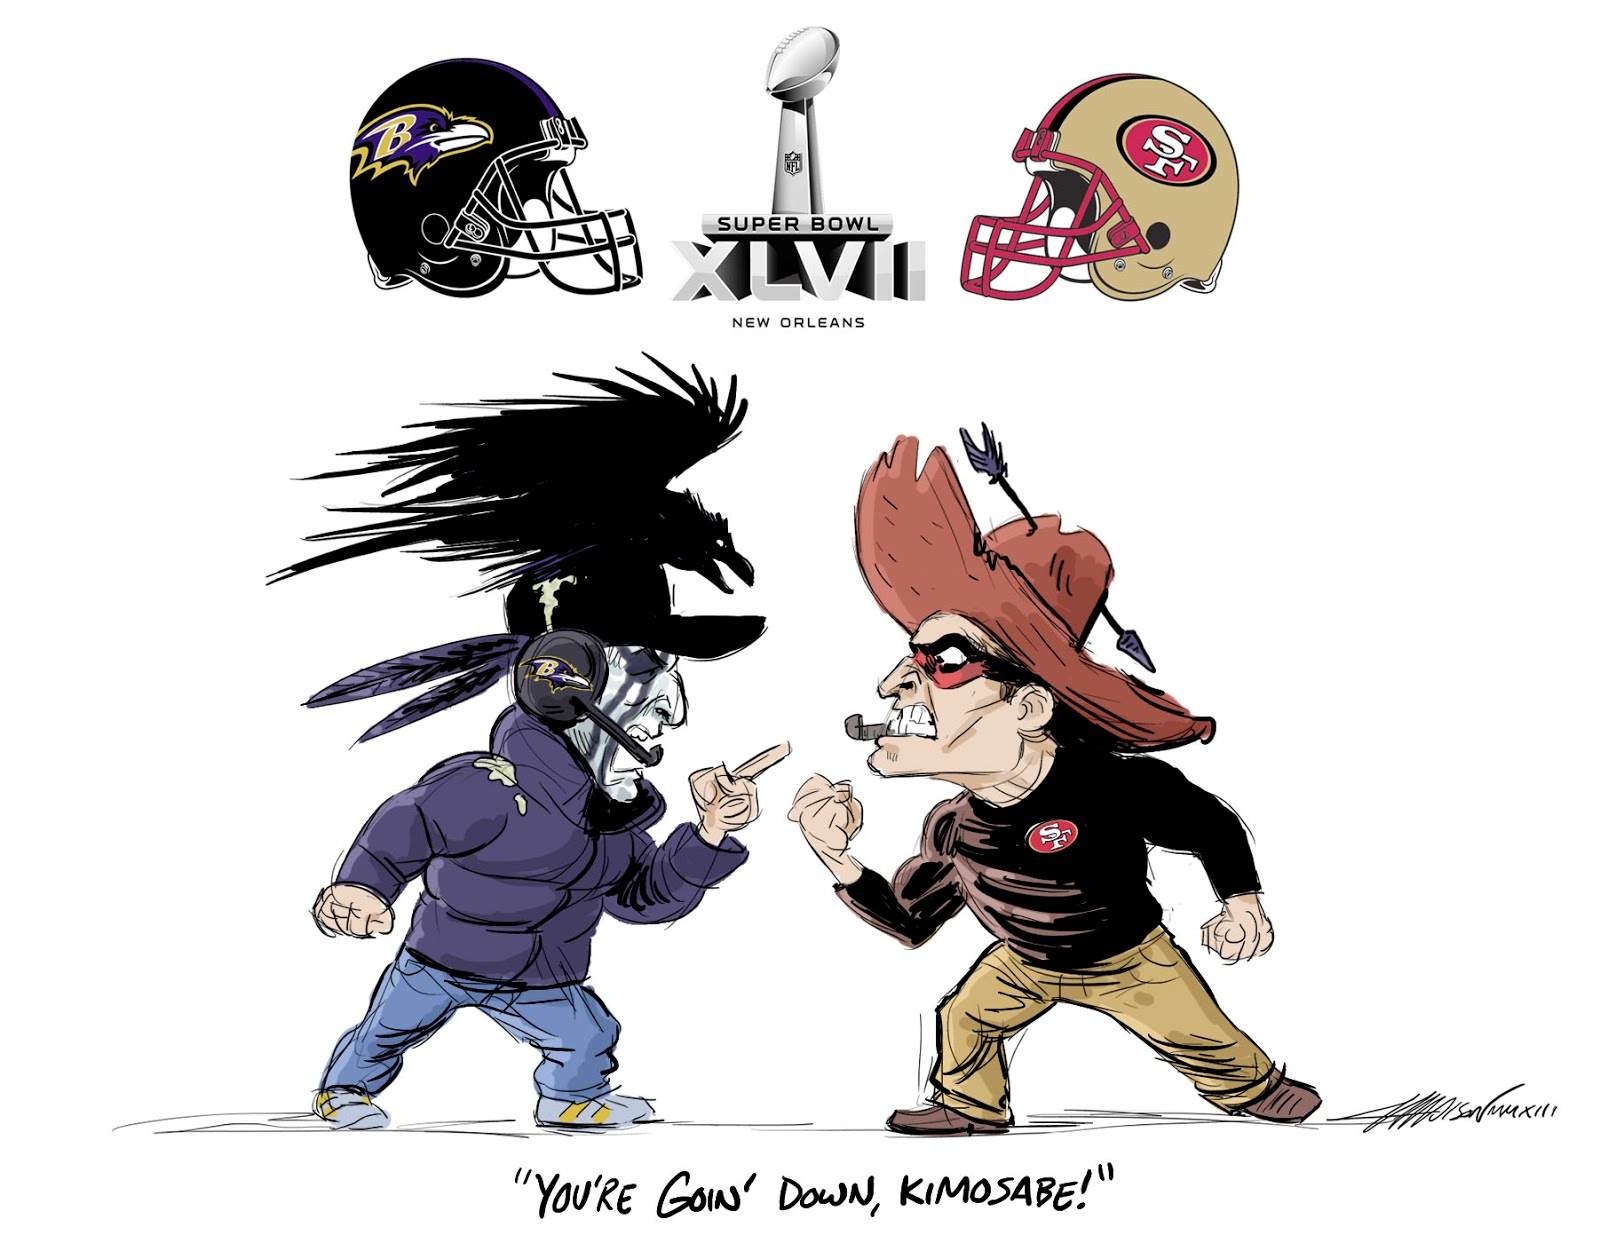 A Pixar Animator Sketches The Nfl Season Gallery Ebaums World